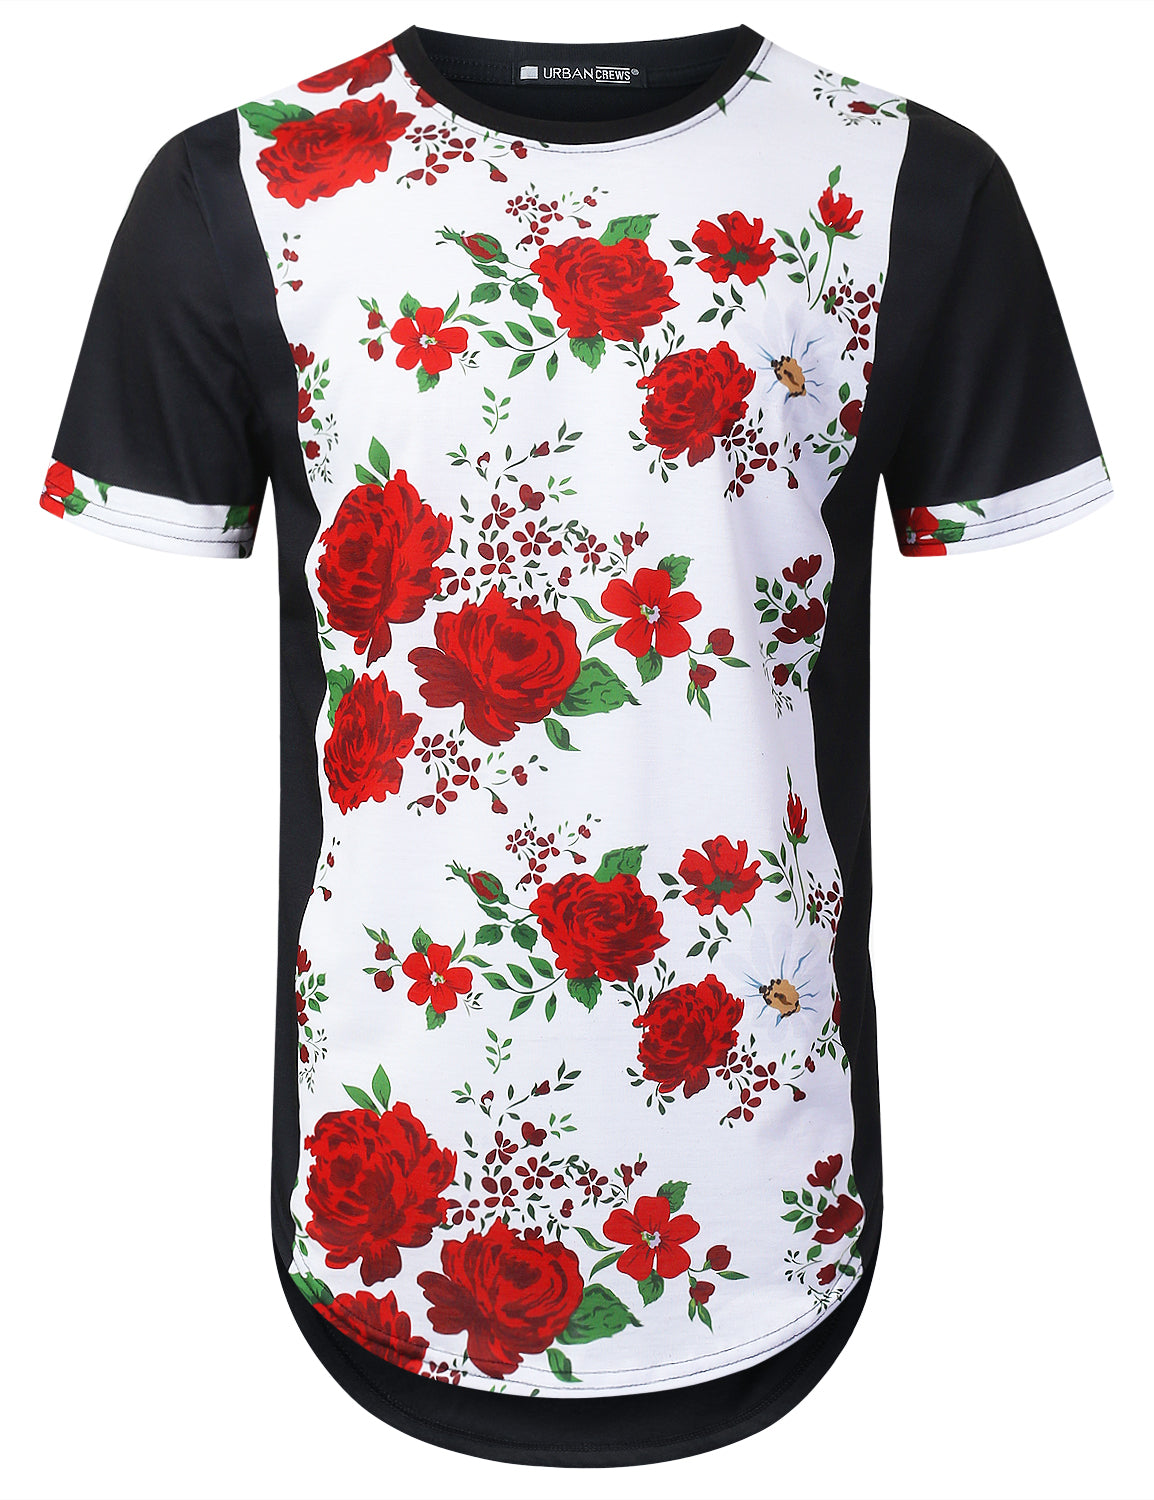 BLACK Vertical Rose Floral Longline T-shirt - URBANCREWS